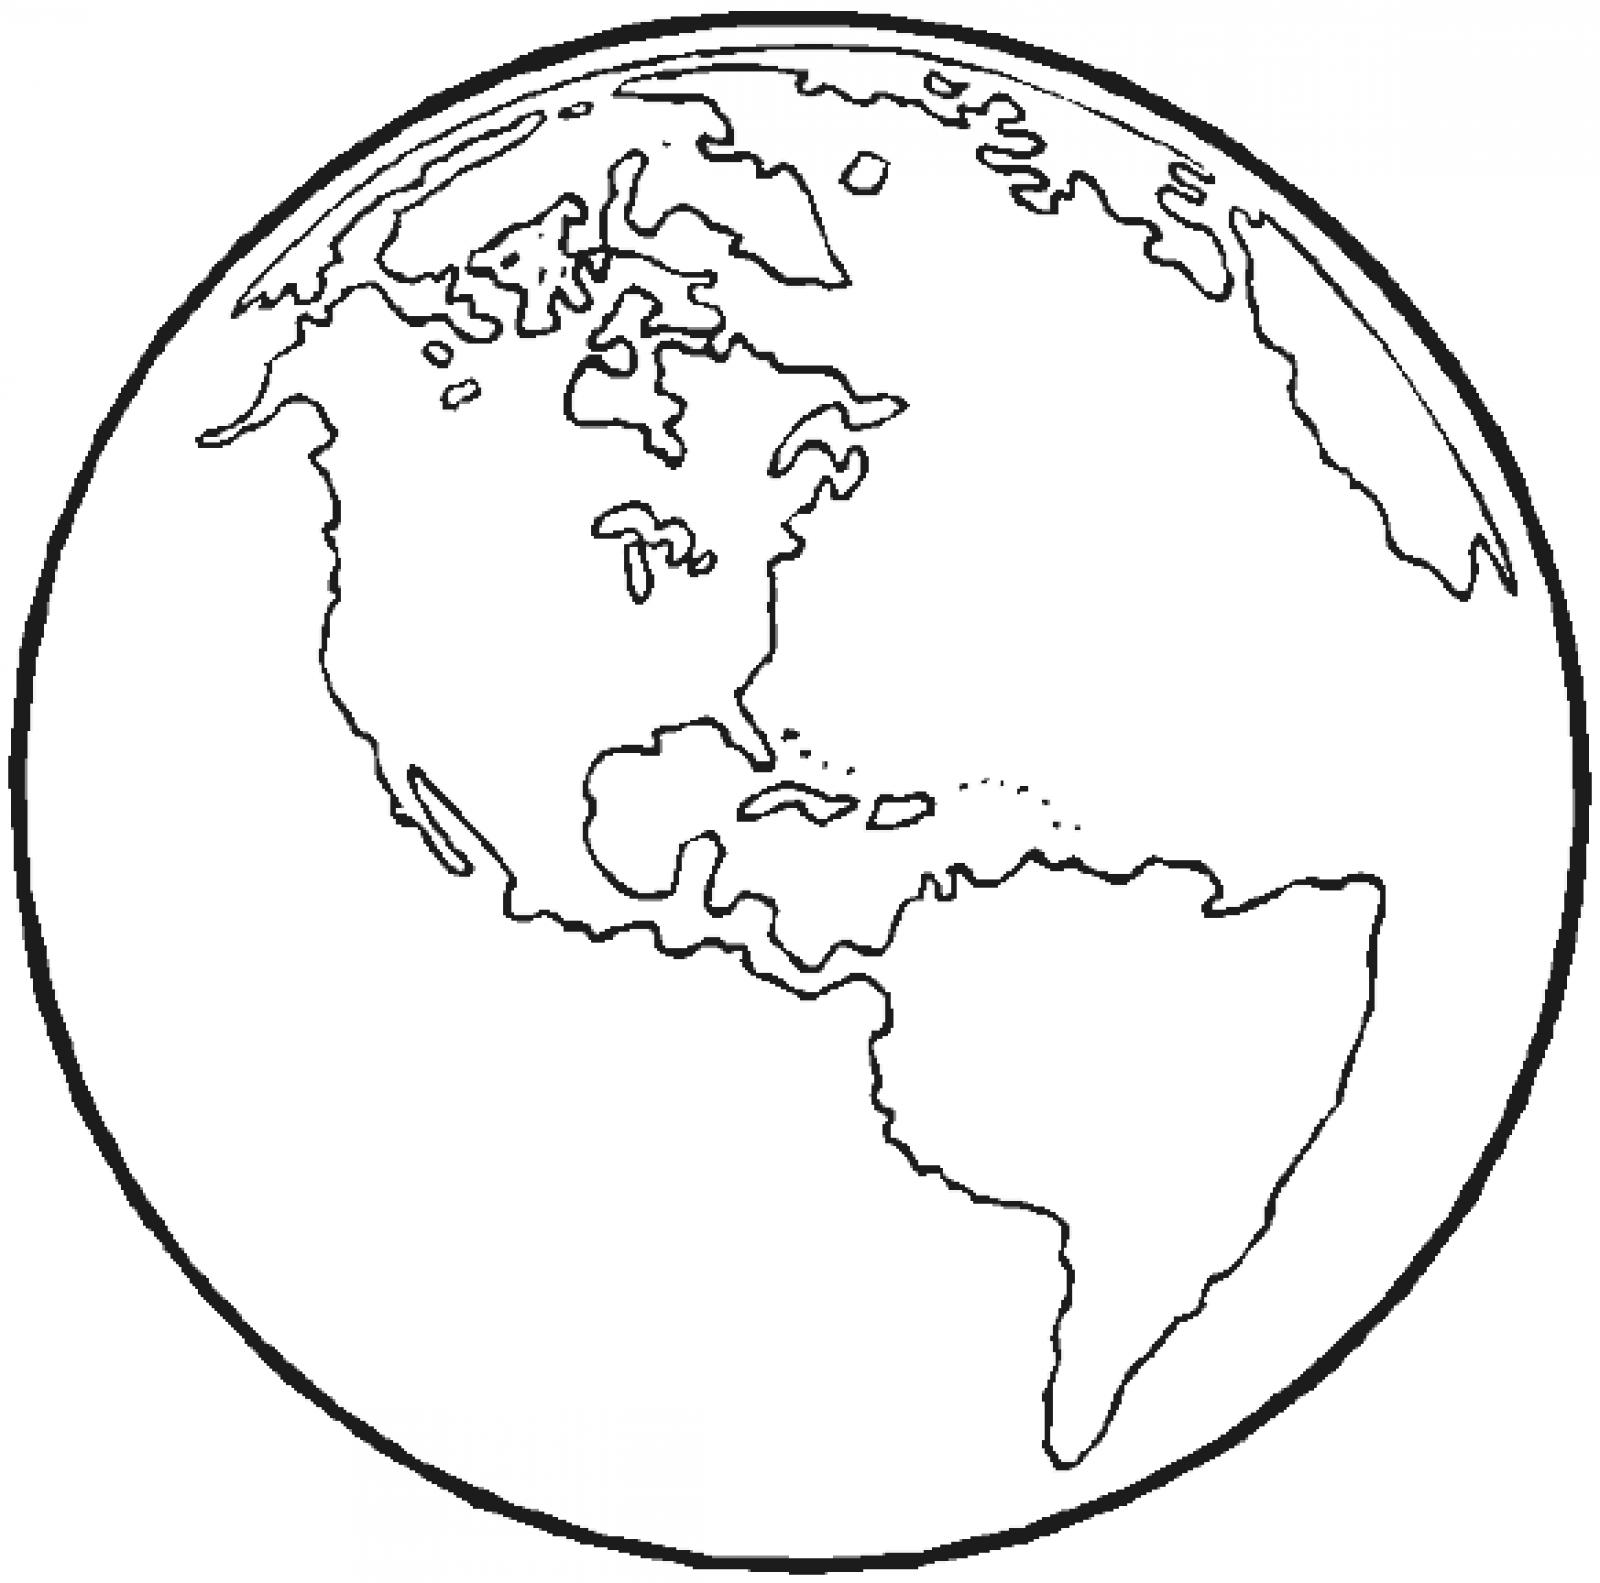 planet earth coloring page free coloring pages printable pictures to color kids earth page coloring planet